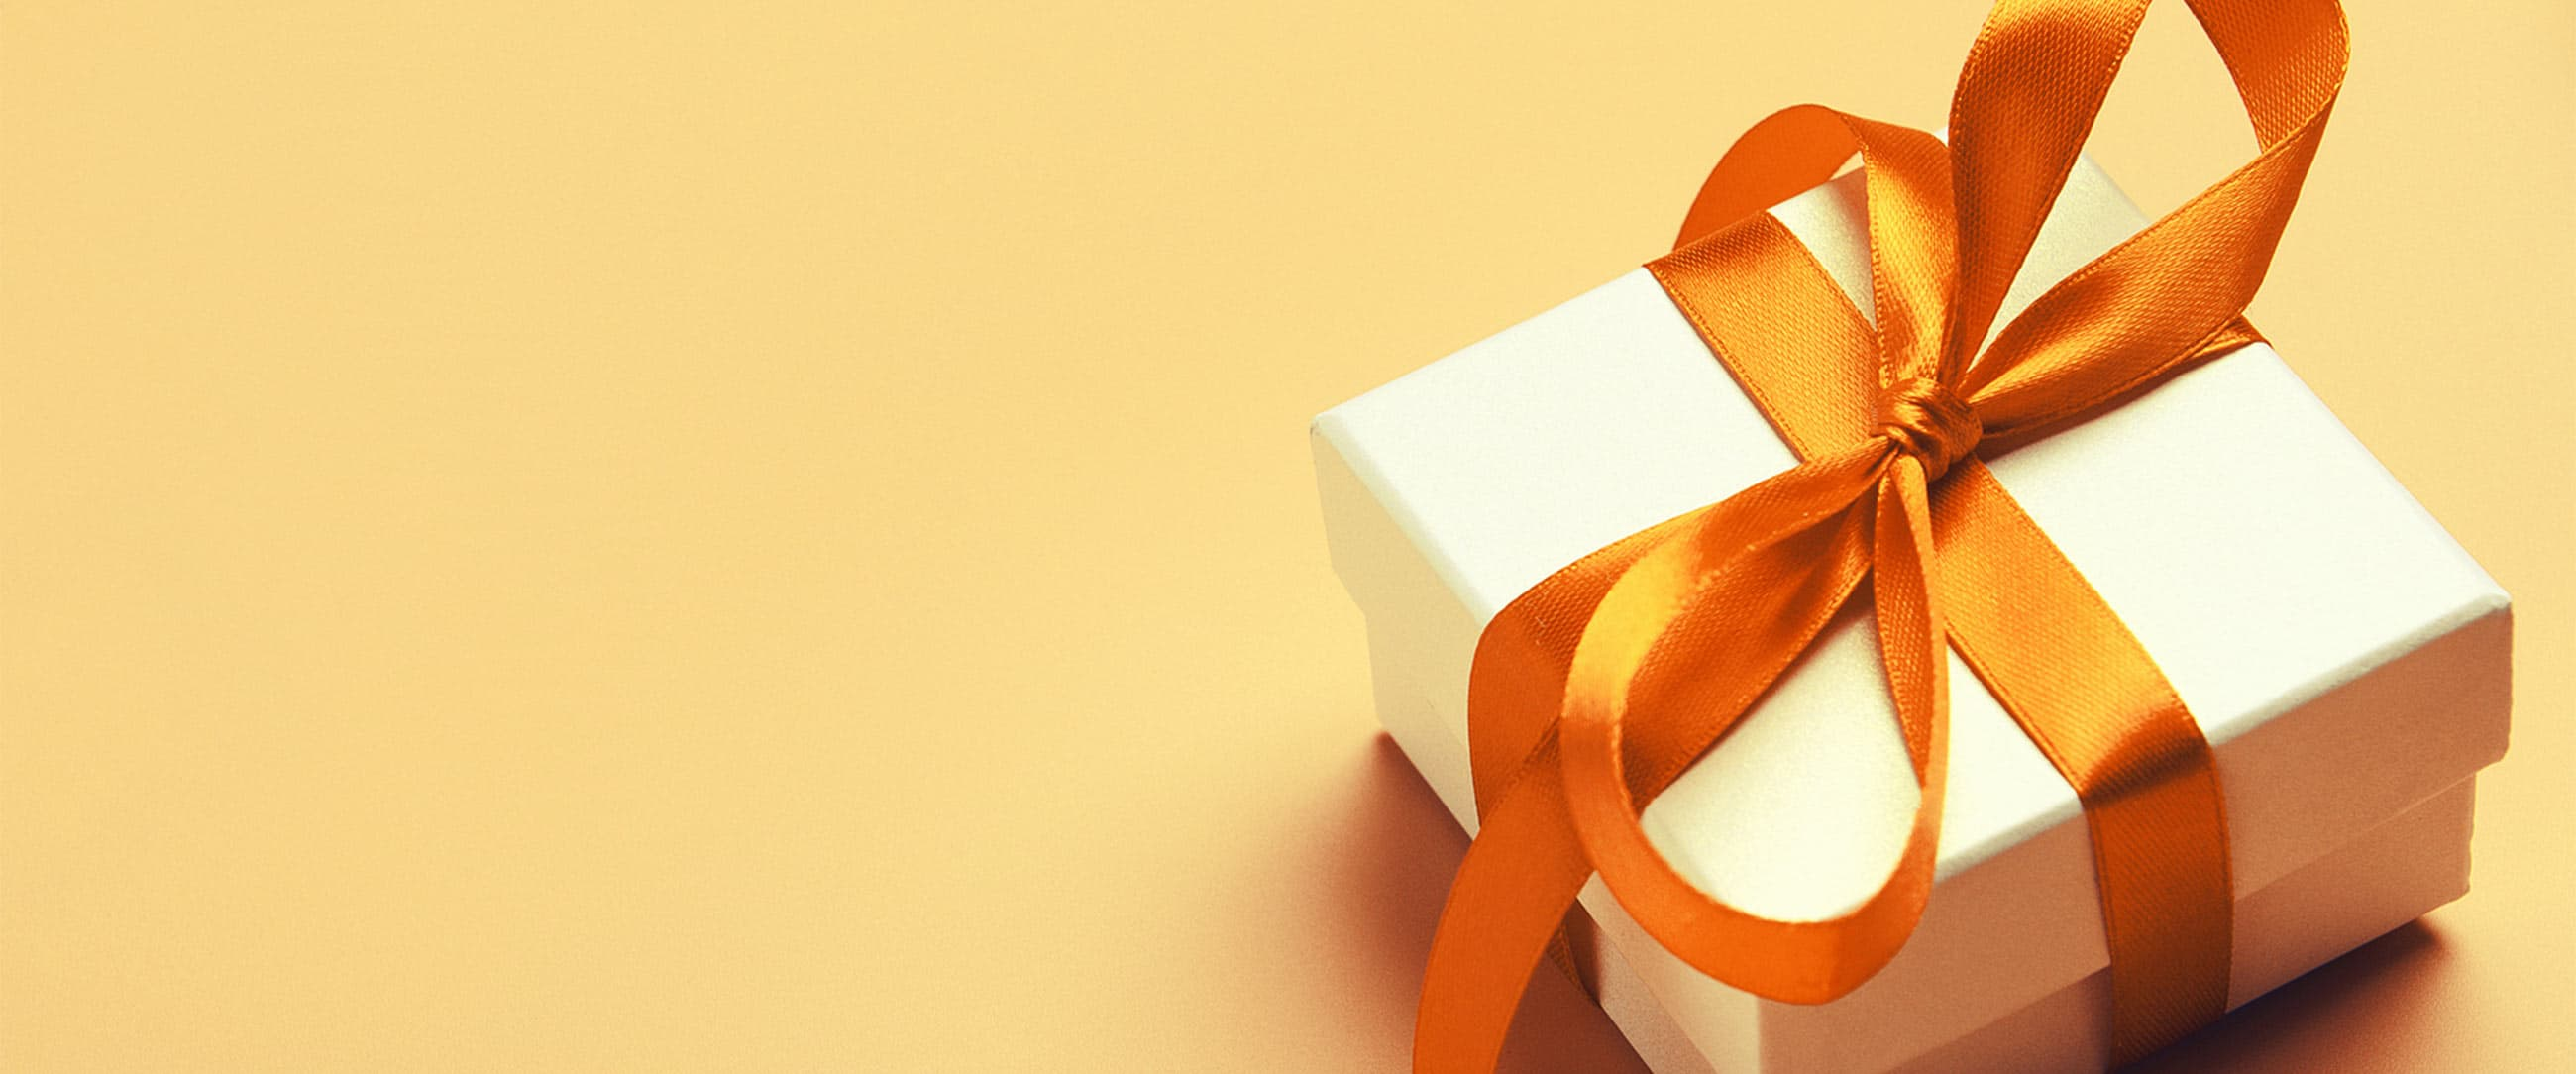 Gift Box with an orange bow on a yellow background